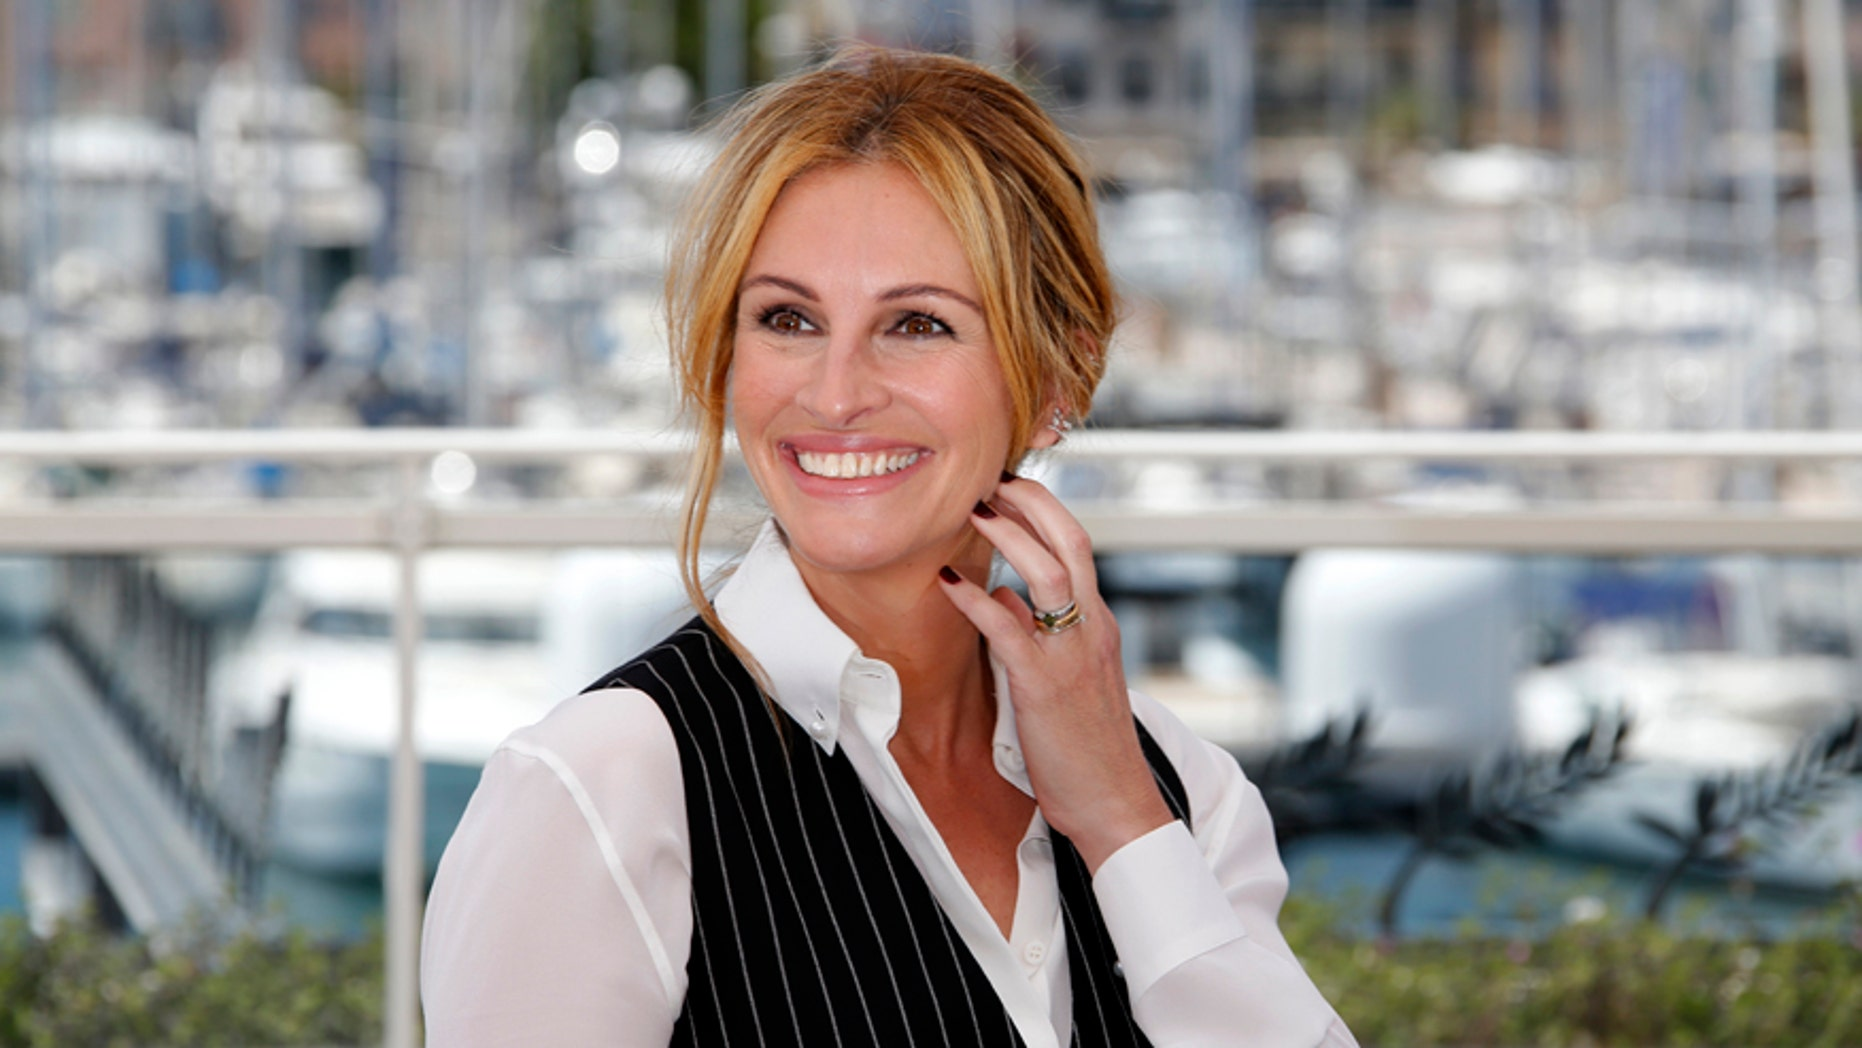 """Cast member Julia Roberts poses during a photocall for the film """"Money Monster"""" out of competition at the 69th Cannes Film Festival in Cannes, France, May 12, 2016."""